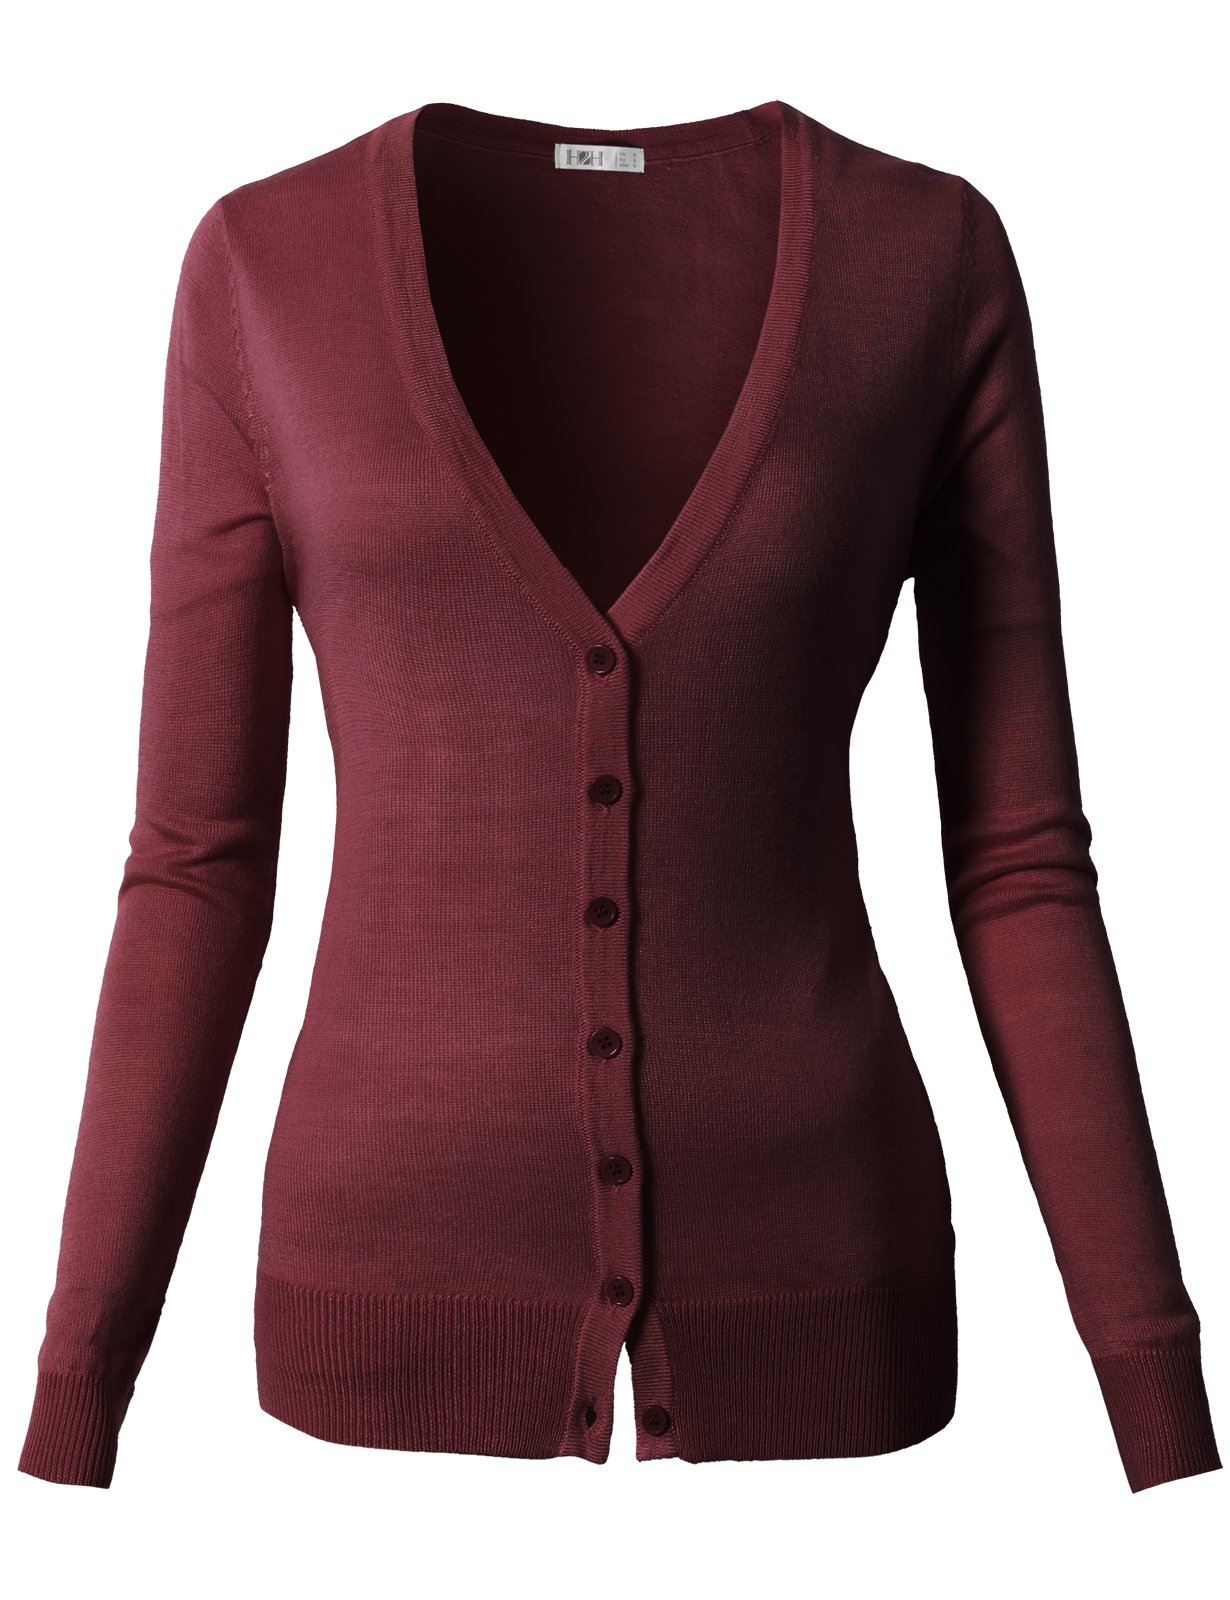 H2H Womens Basic Style Solid Warm Knitted Button Closure Cardigans Wine US 2XL/Asia 2XL (CWOCAL067)